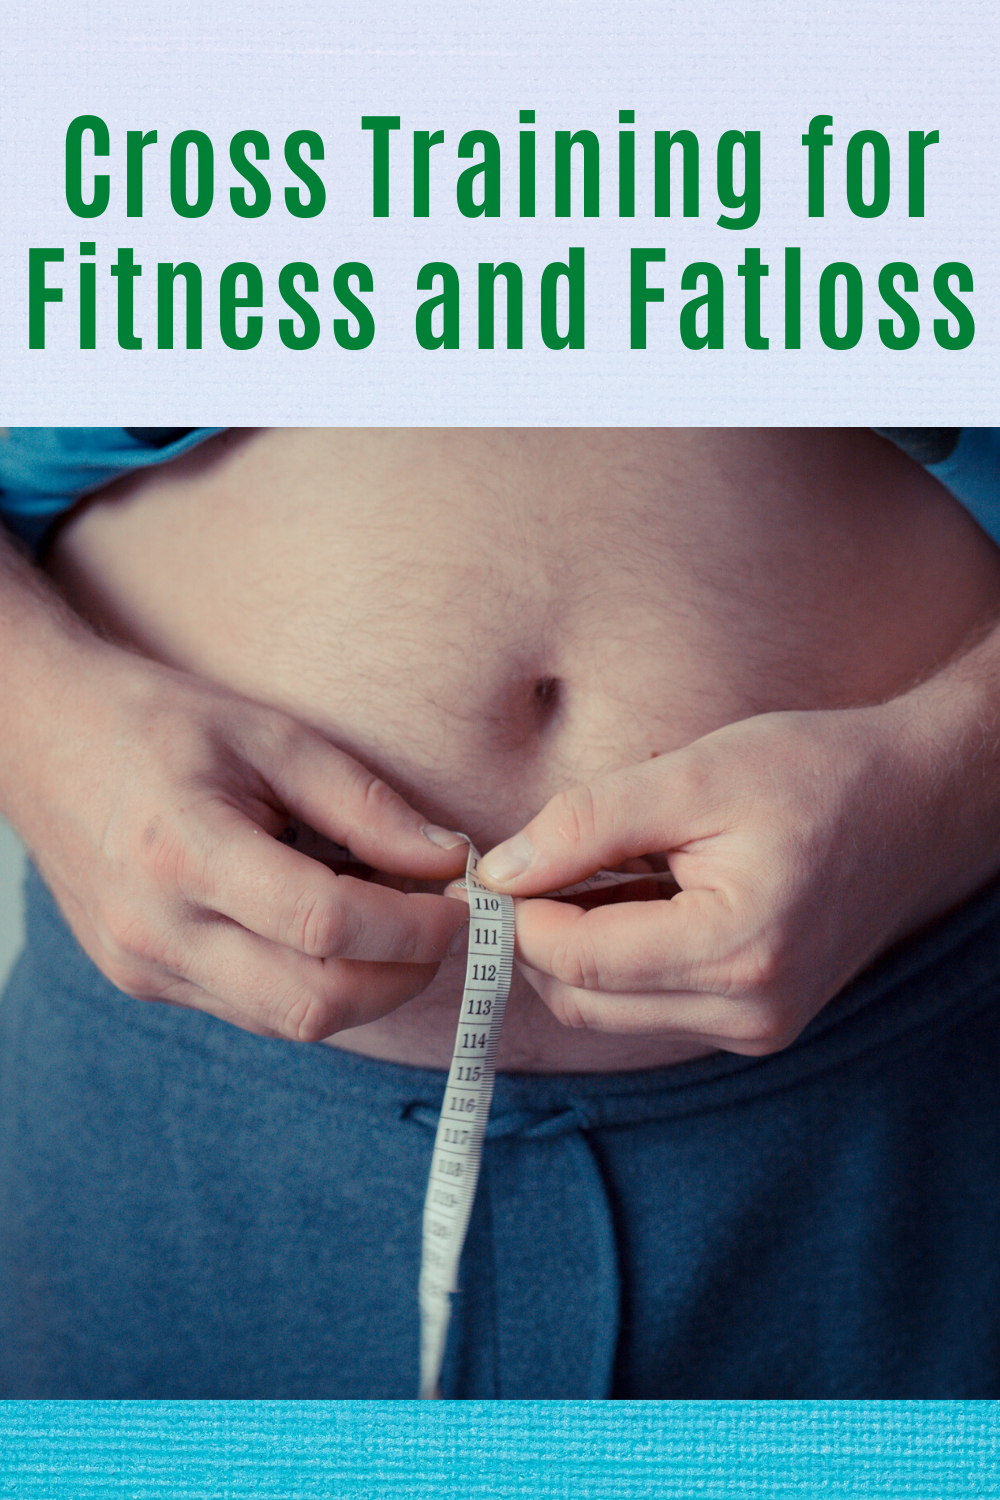 Cross Training for Fitness and Fatloss